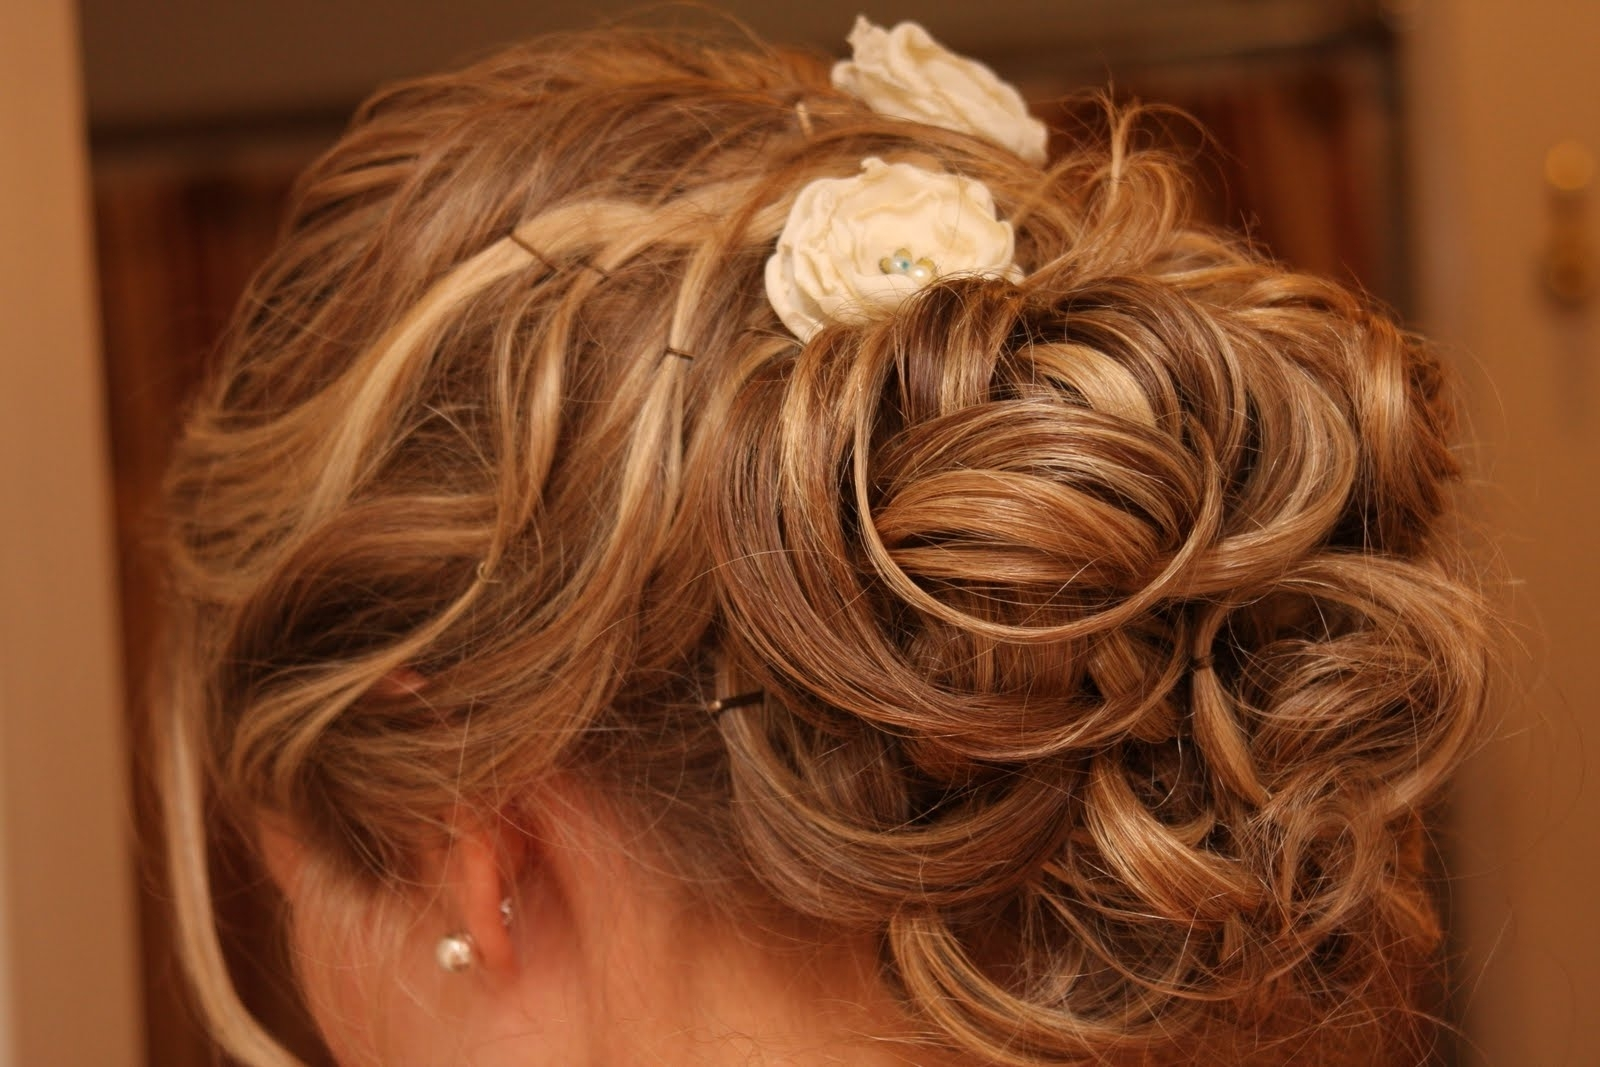 Best And Newest Low Updo Wedding Hairstyles With Wedding Hairstyles Ideas: Messy Low Updo Hairstyles For Curly Hair (View 14 of 15)